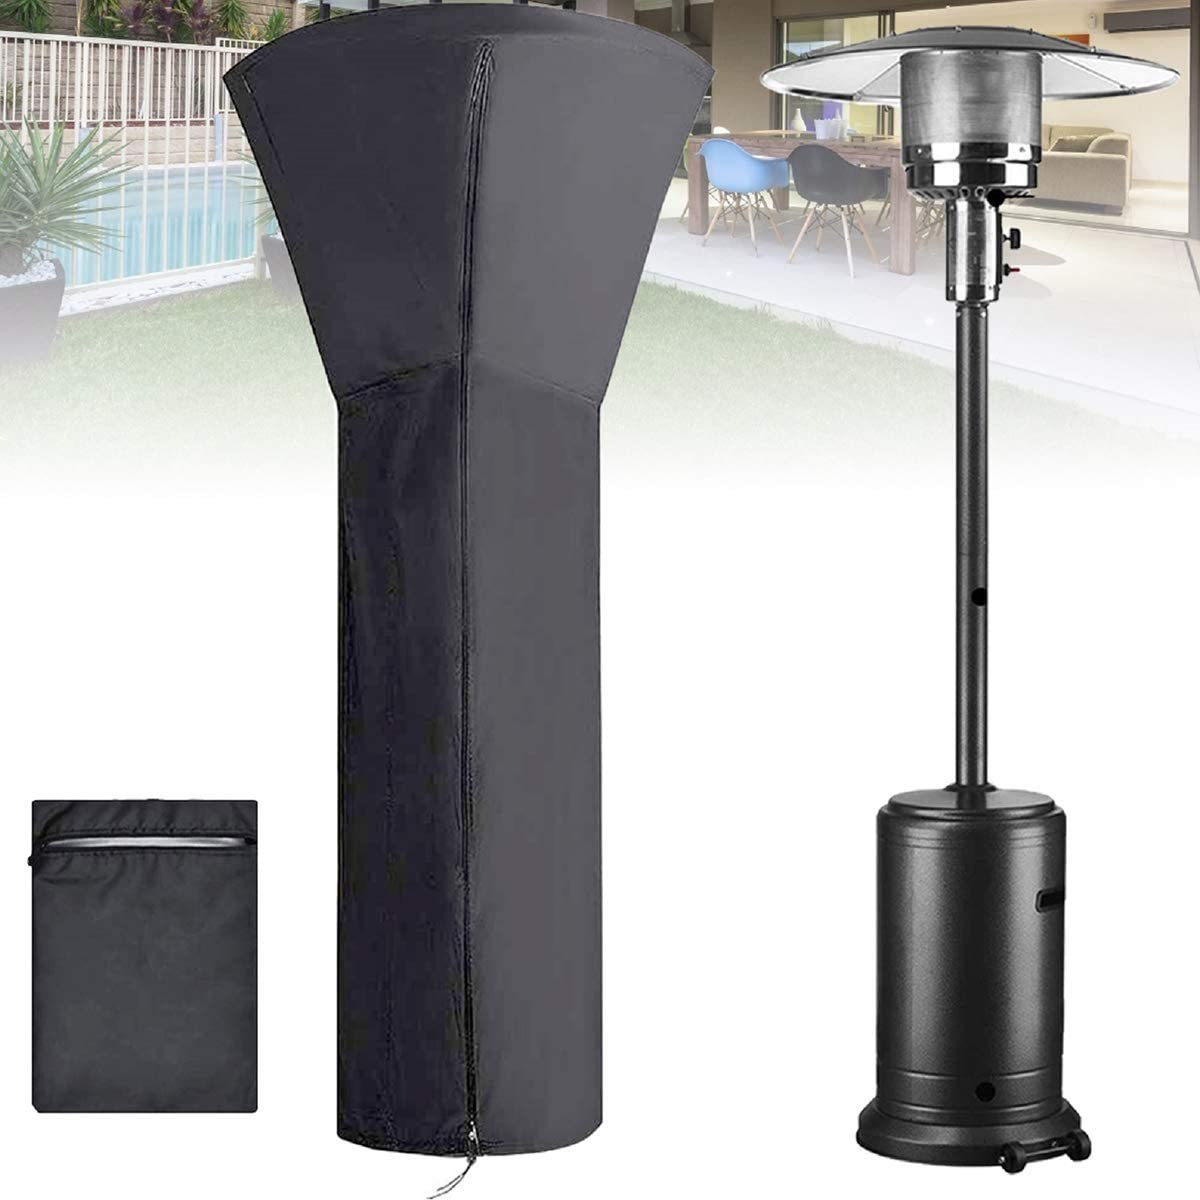 LMHEJING Patio Heater Covers Waterproof with Zipper (Upgraded 420D, H87xD33x19 in), Storage Bag Heavy Duty Black Protects for Outdoor Snow Rain Dust and Sun (H89xD33x19 in, Black)